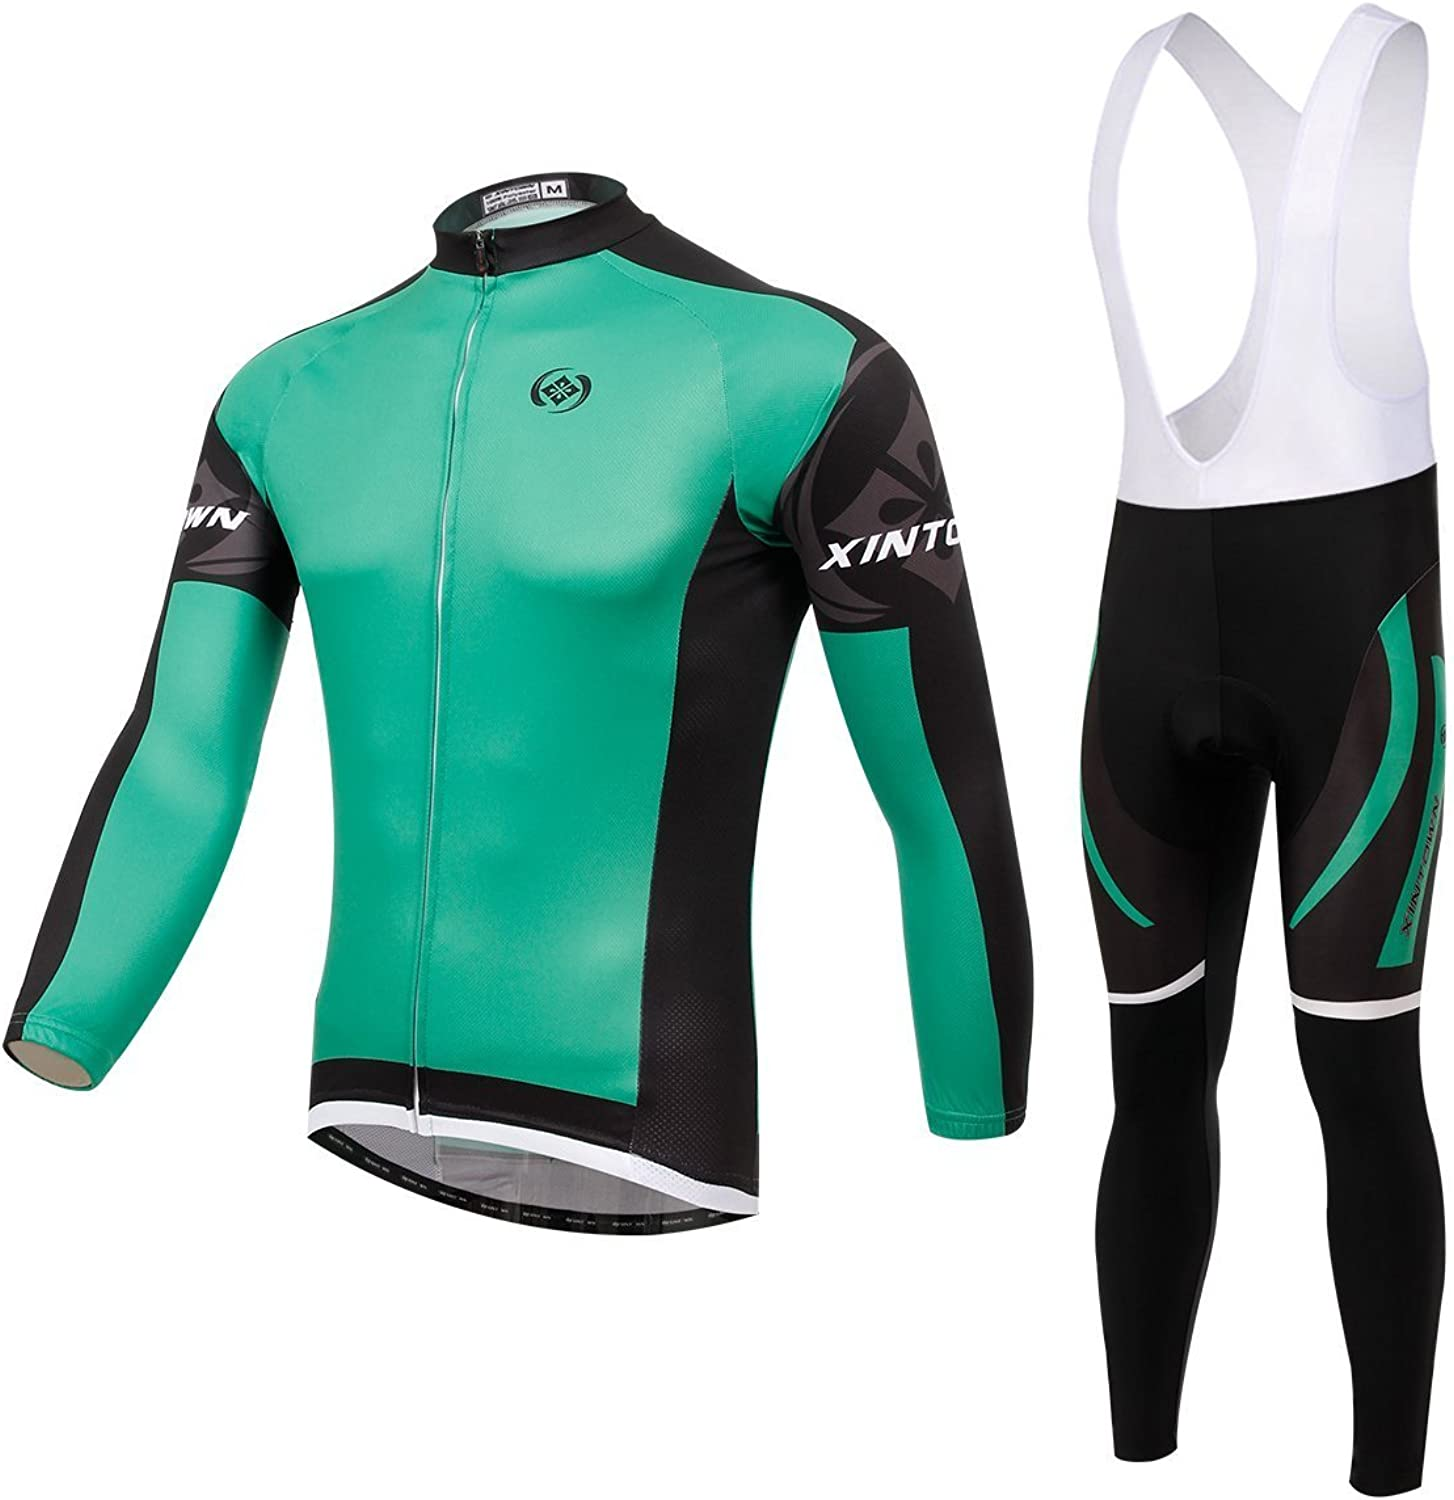 BESYL Unisex Printed HighPerformance Mesh Cycling Clothing Suit, Breathable Long Sleeve Cycling Jersey and Bib Padded Pants Kit for Bicycle Bike Riding Biker (Green Black White)